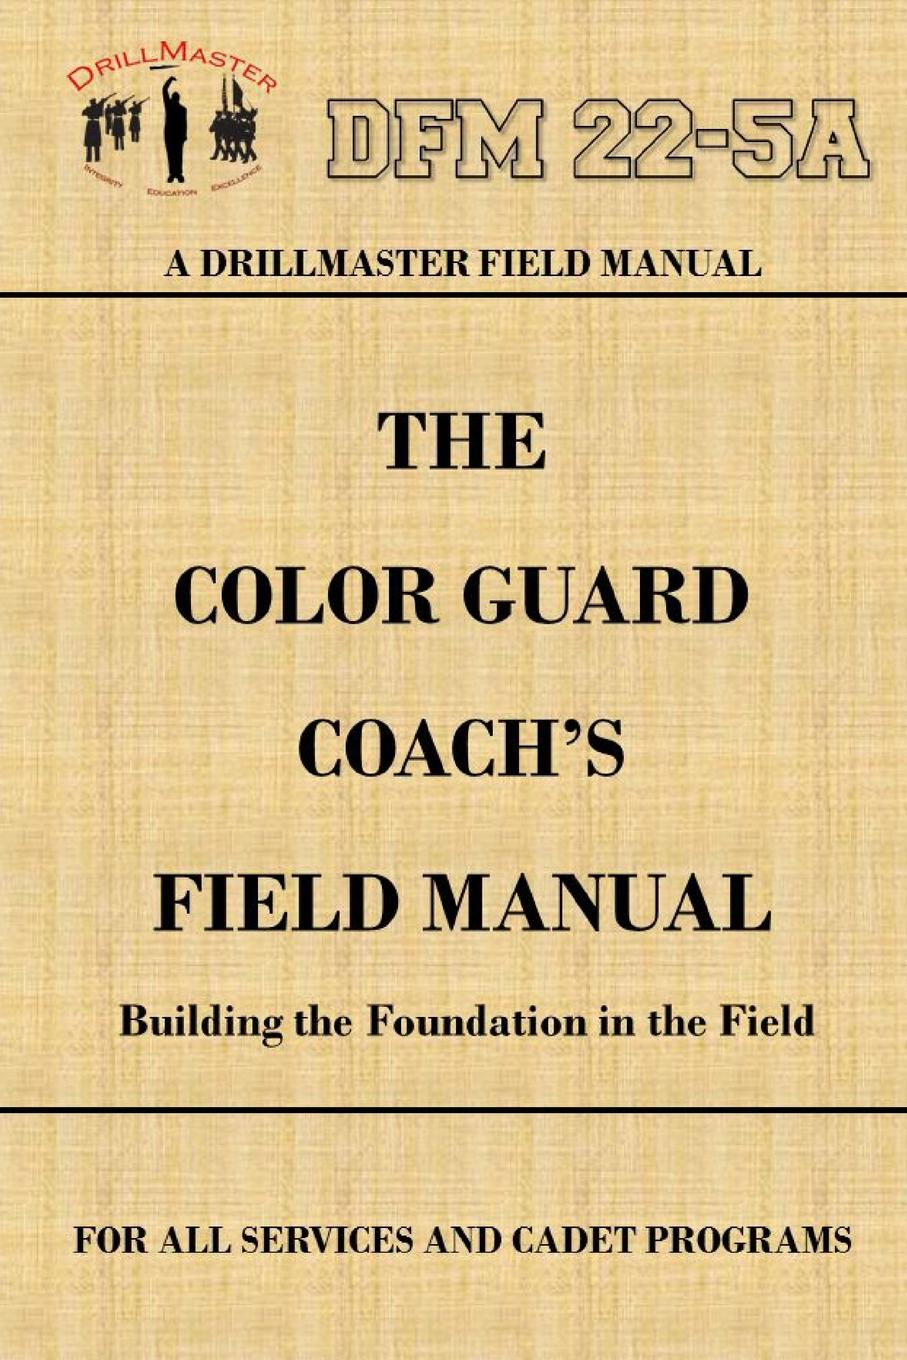 John Marshall DrillMaster.s Color Guard Coach.s Field Manual concise women s crossbody bag with buckle and solid color design